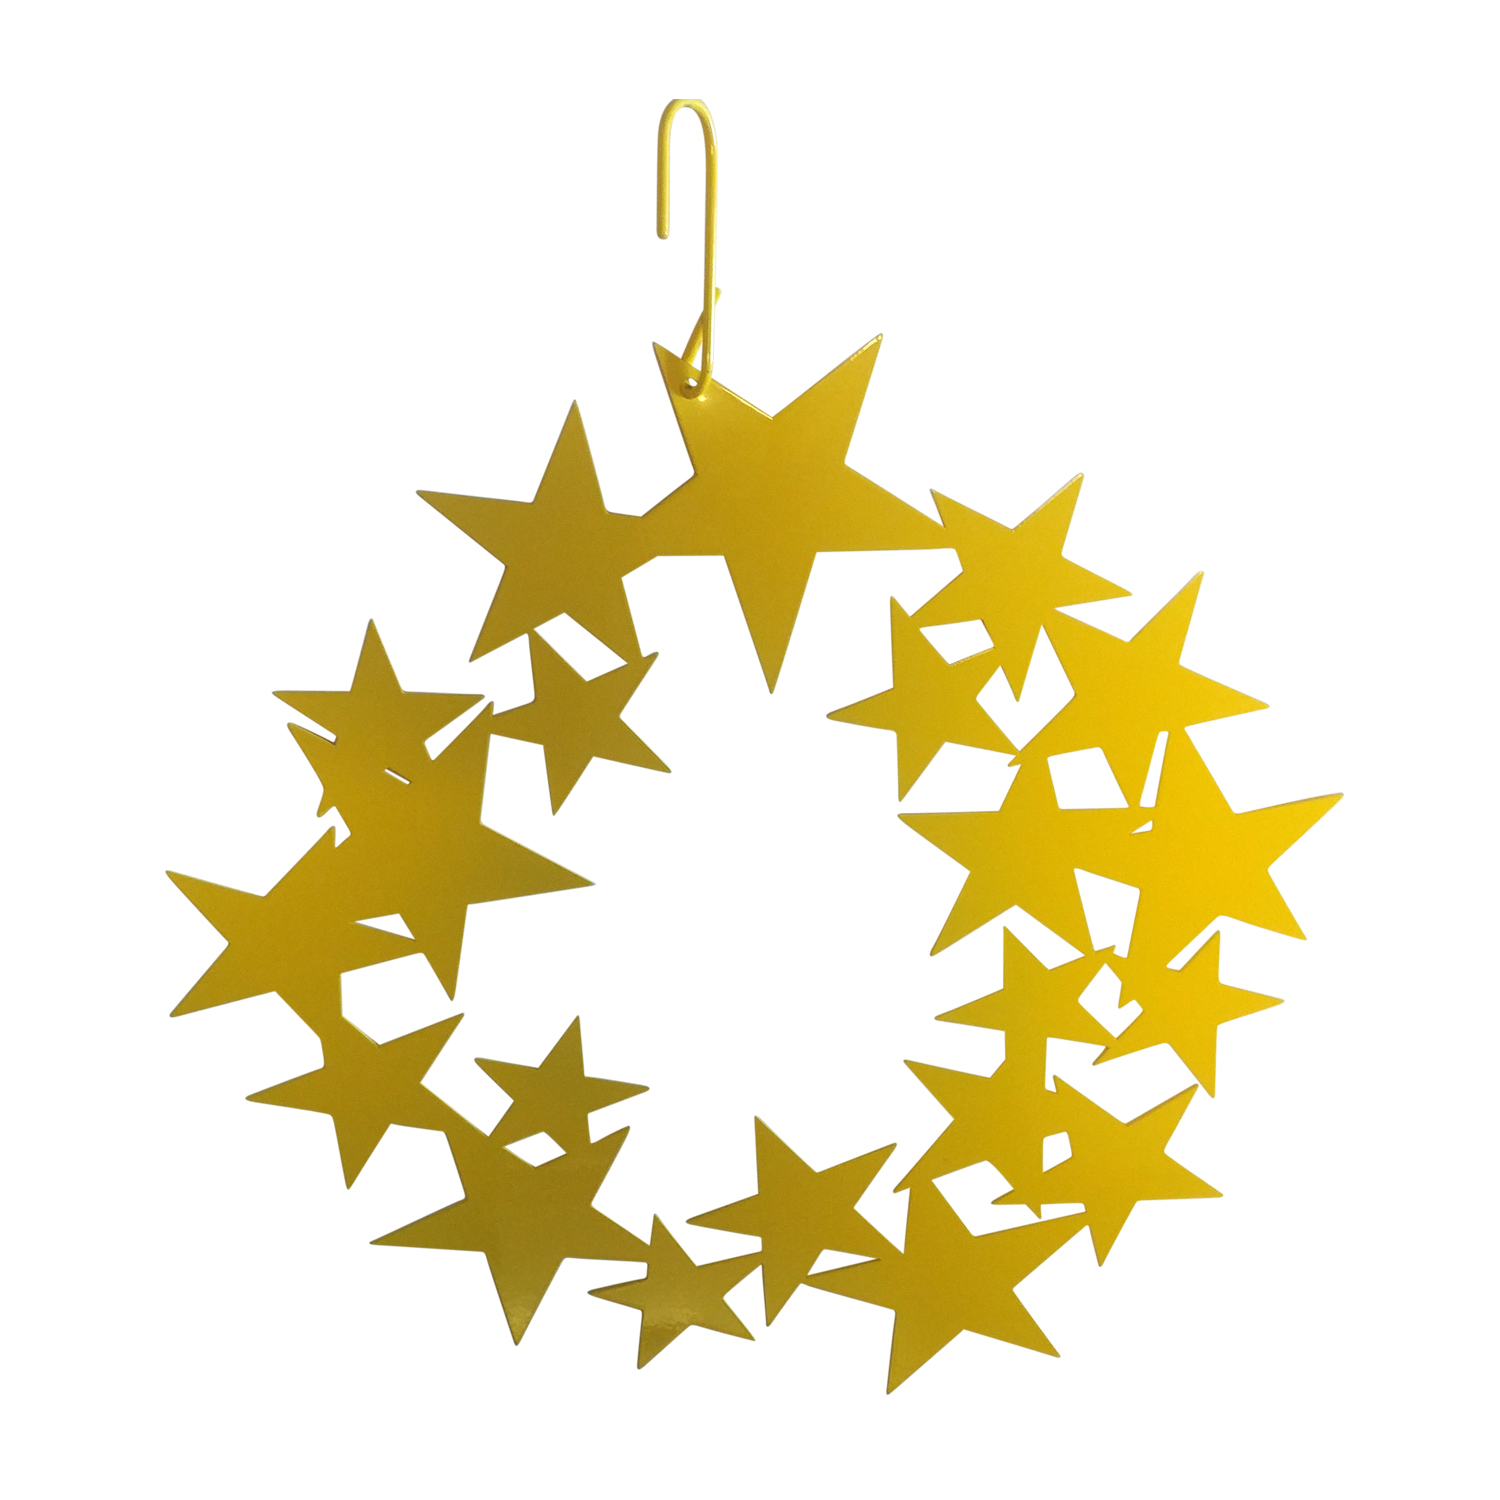 Star Wreath - Decorative Hanging Silhouette - NEW Yellow Color